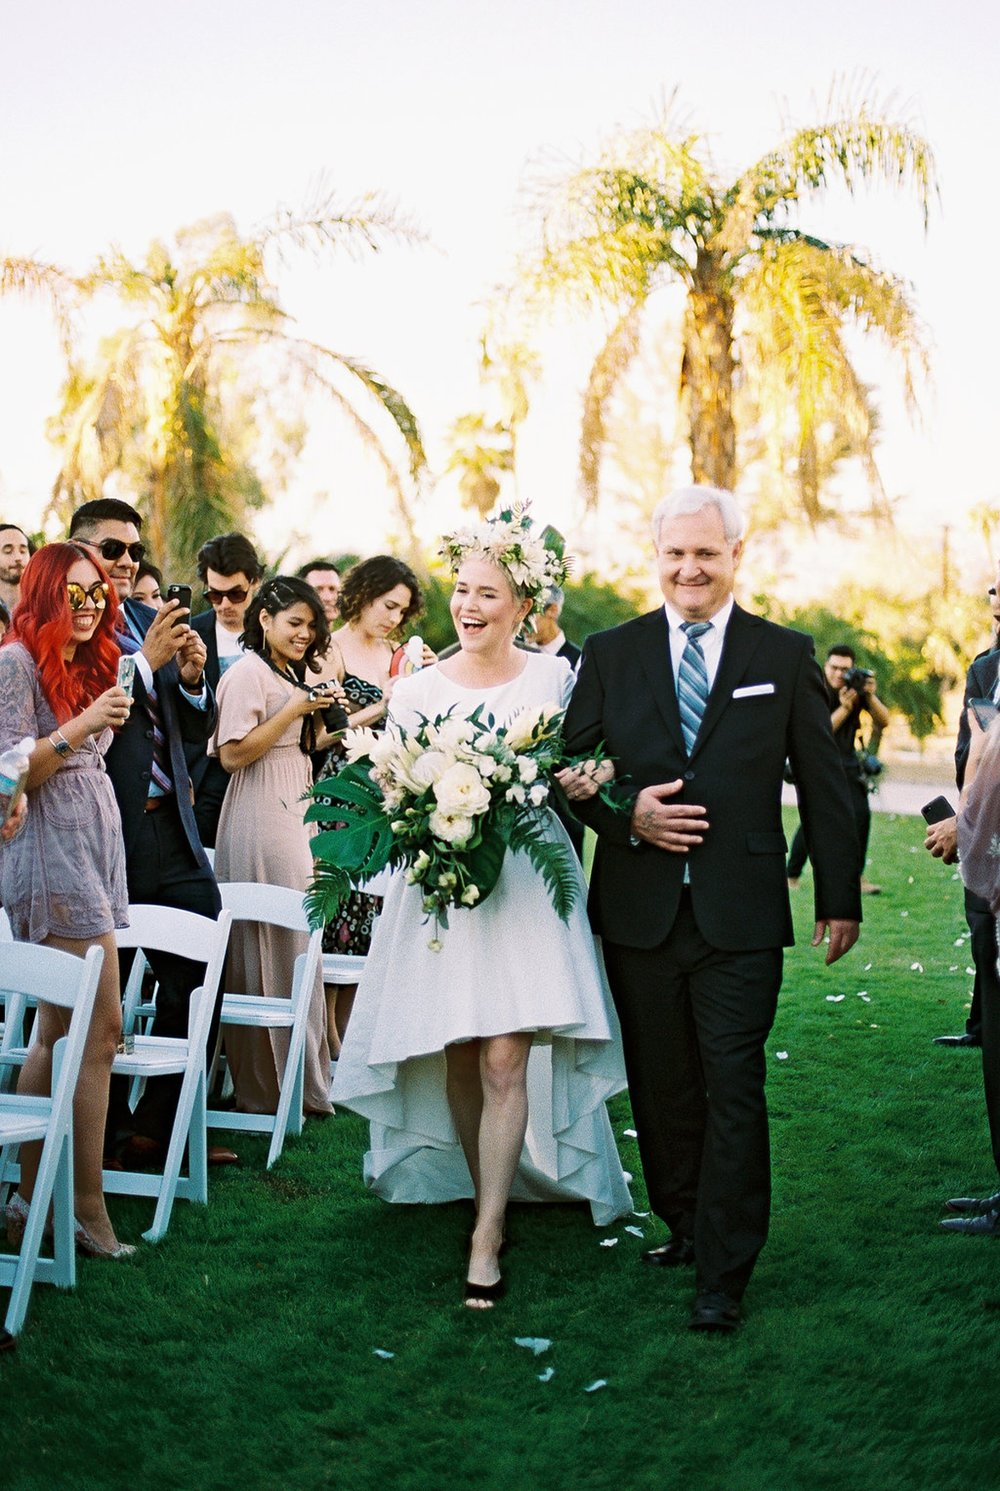 Phi and Alannas Backyard Wedding in Palm Springs California 20.jpg